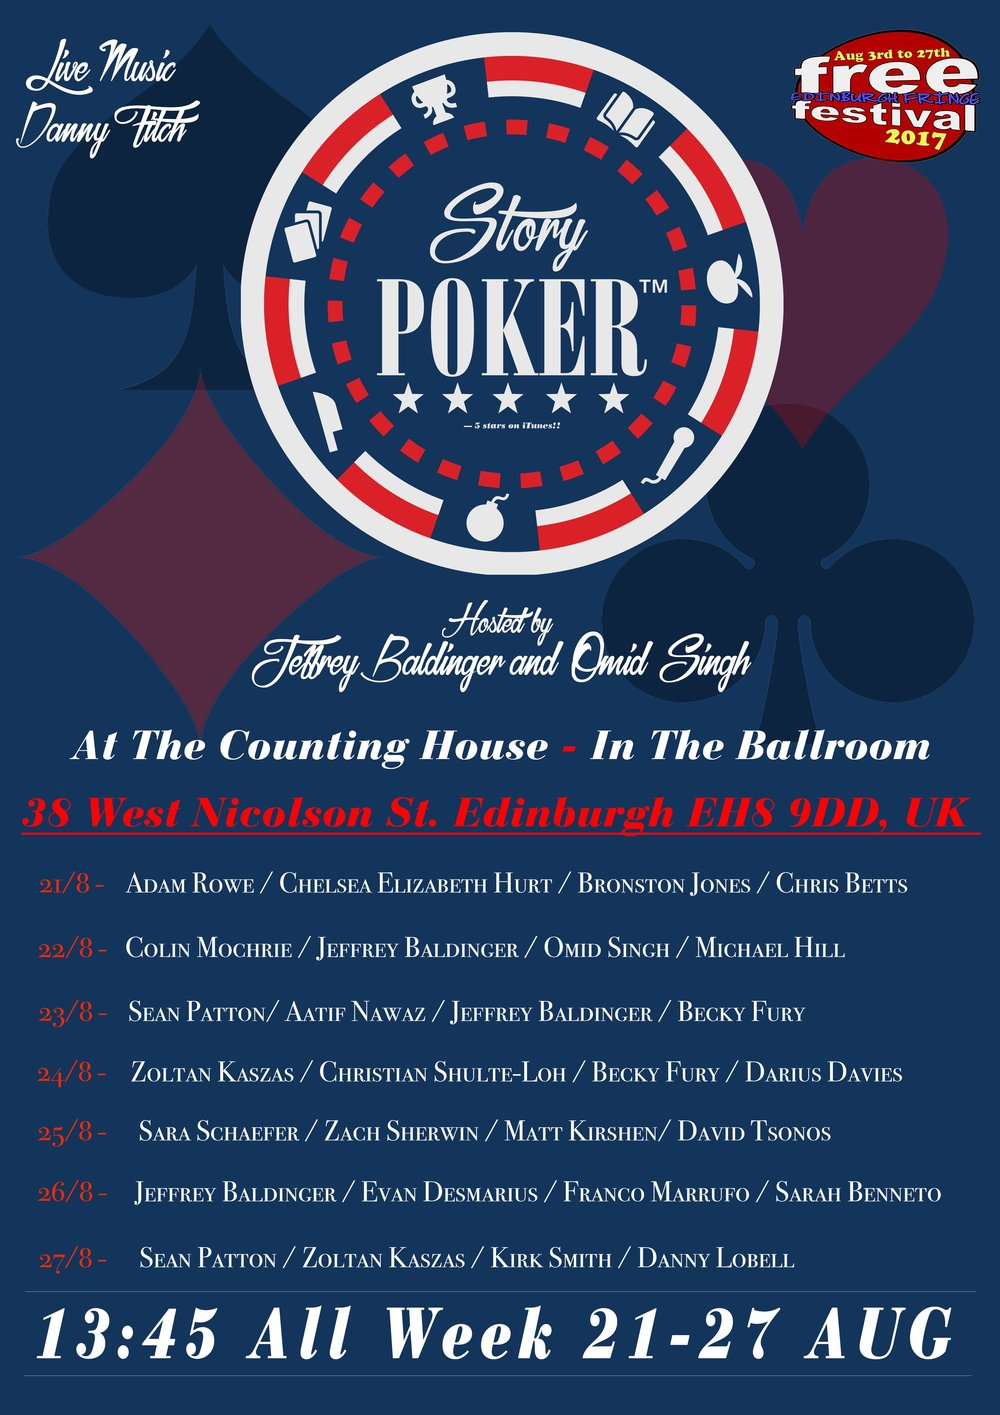 Story Poker:Edinburgh Edition - 7 days of Story Poker Competition at the biggest Fringe Festival in the world with the best comedians and story tellers in the world. Hosted by Jeffrey Baldinger and Omid Singh with Live music from Danny Fitch. This show was given great reviews and had sold out shows at the Counting House in the Ballroom.2017 - I debuted at The EdFringe fest with Story Poker as well as my own half hour Stand-Up shows. (Venues the Counting House - Ballroom and City Cafe)